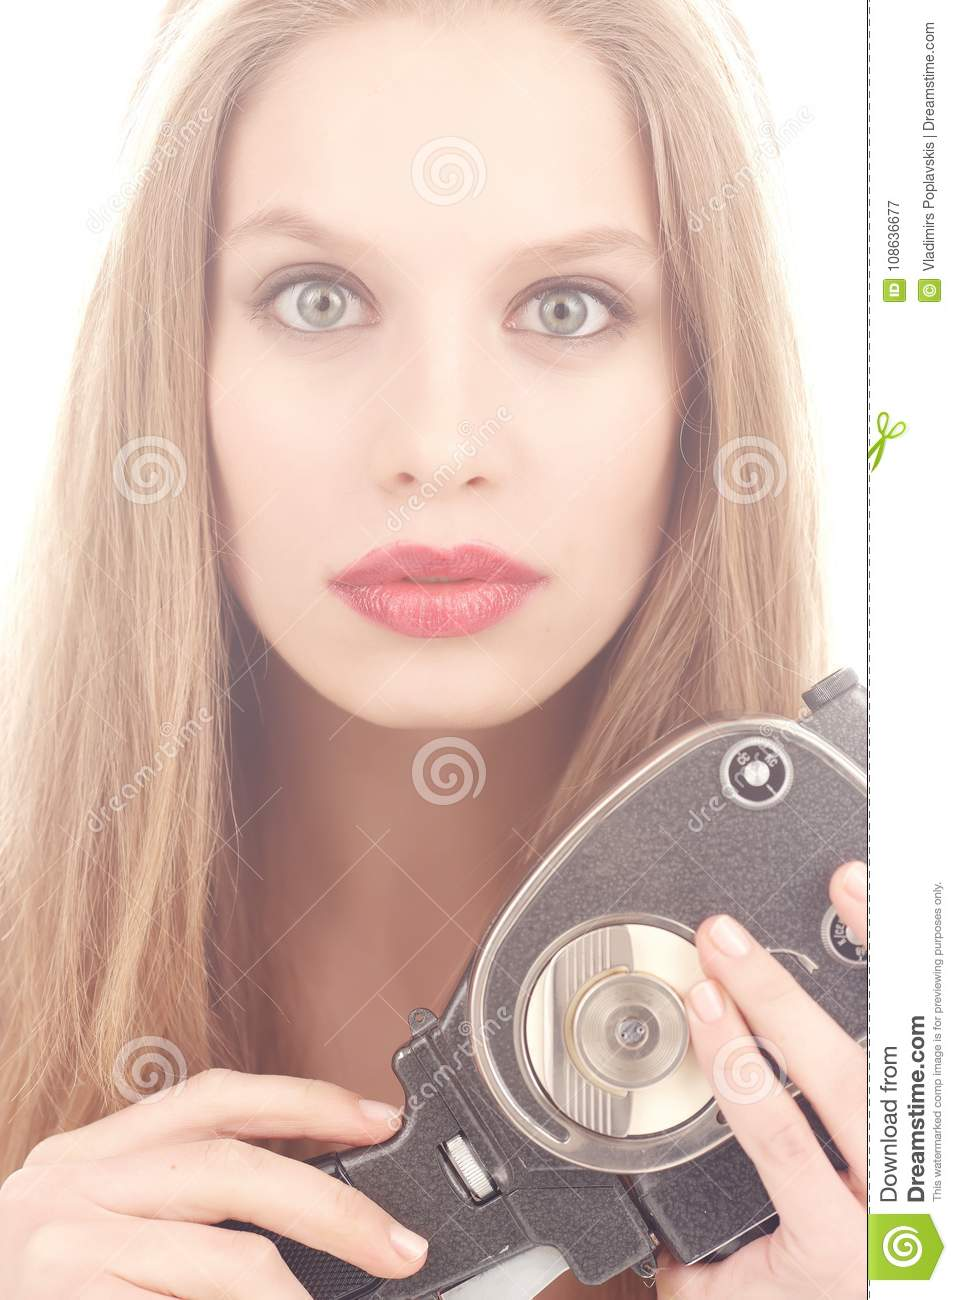 Blond Female Holding Old Video Camera Stock Image - Image of